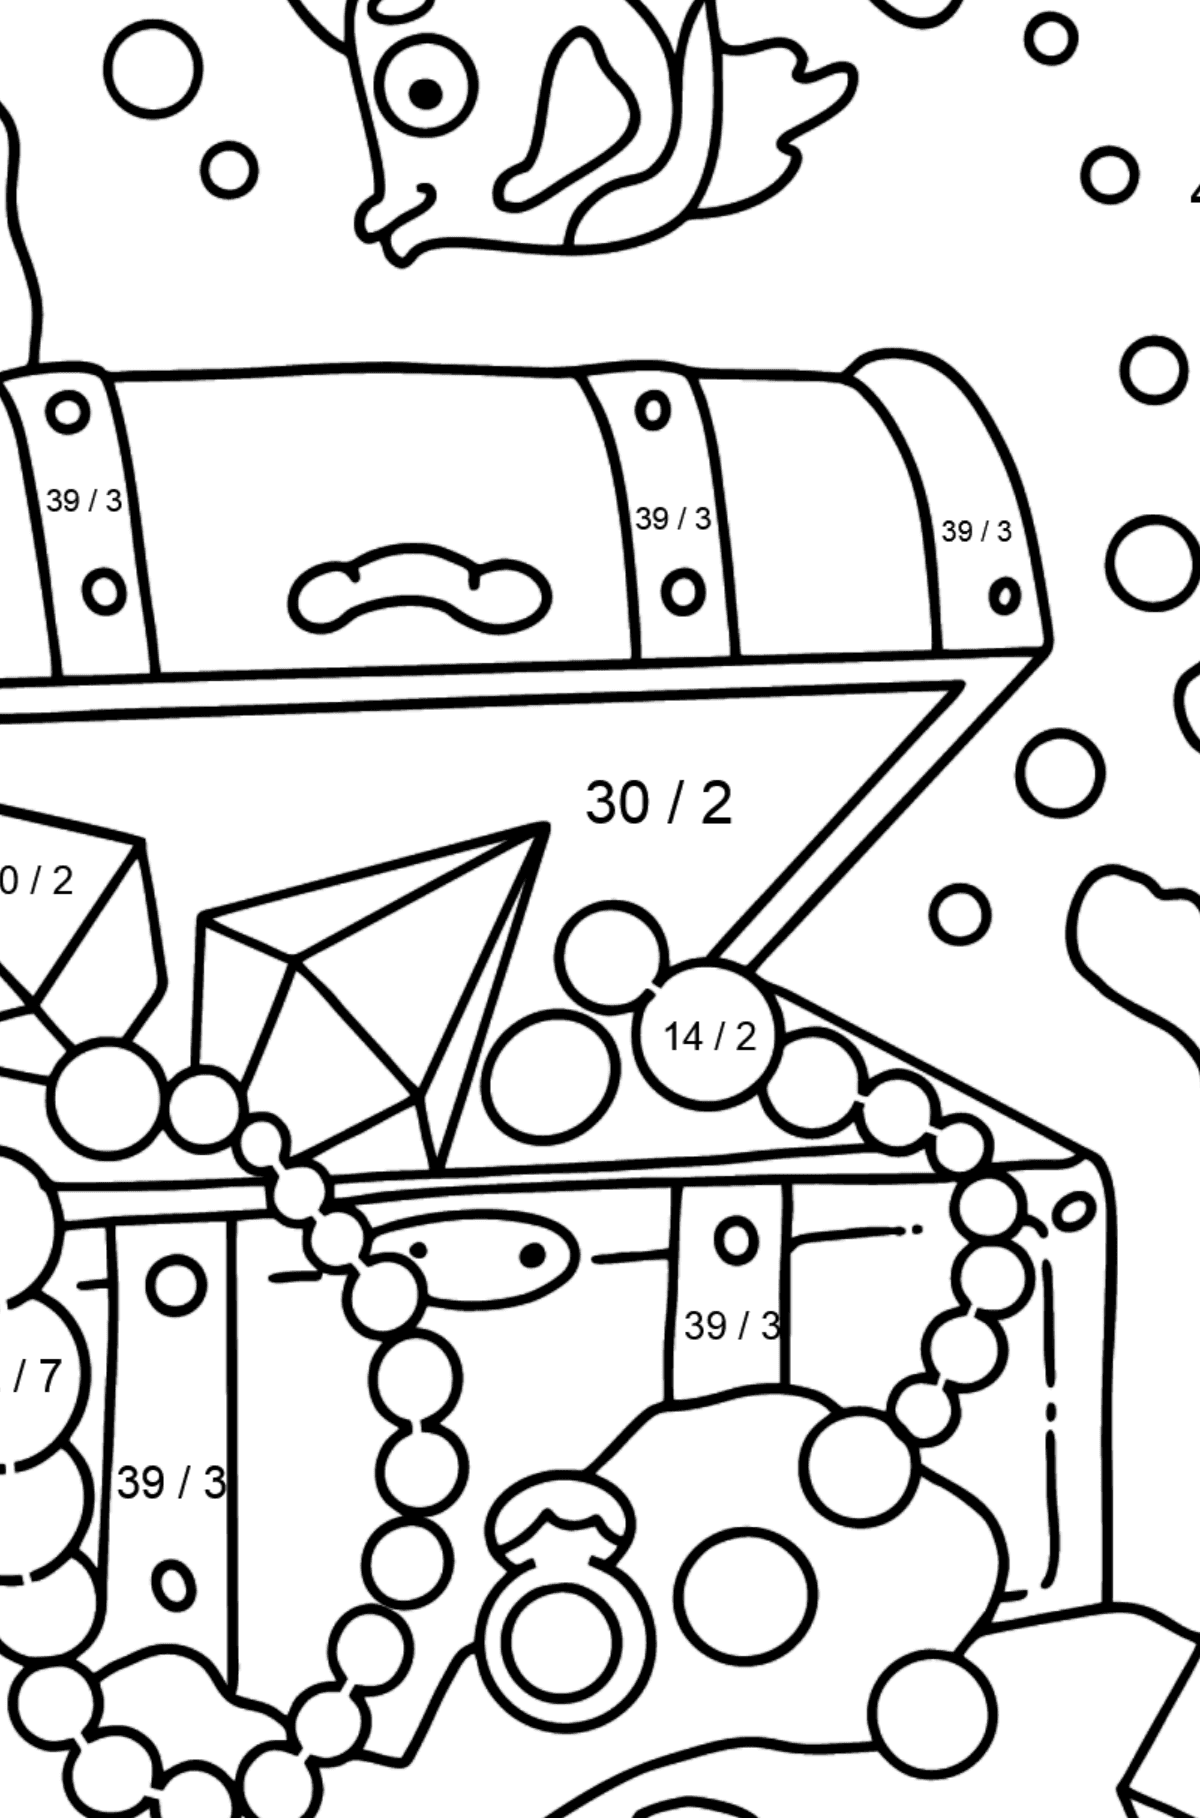 Coloring Page - A Fish is Swimming Around a Pirate's Chest - Math Coloring - Division for Kids